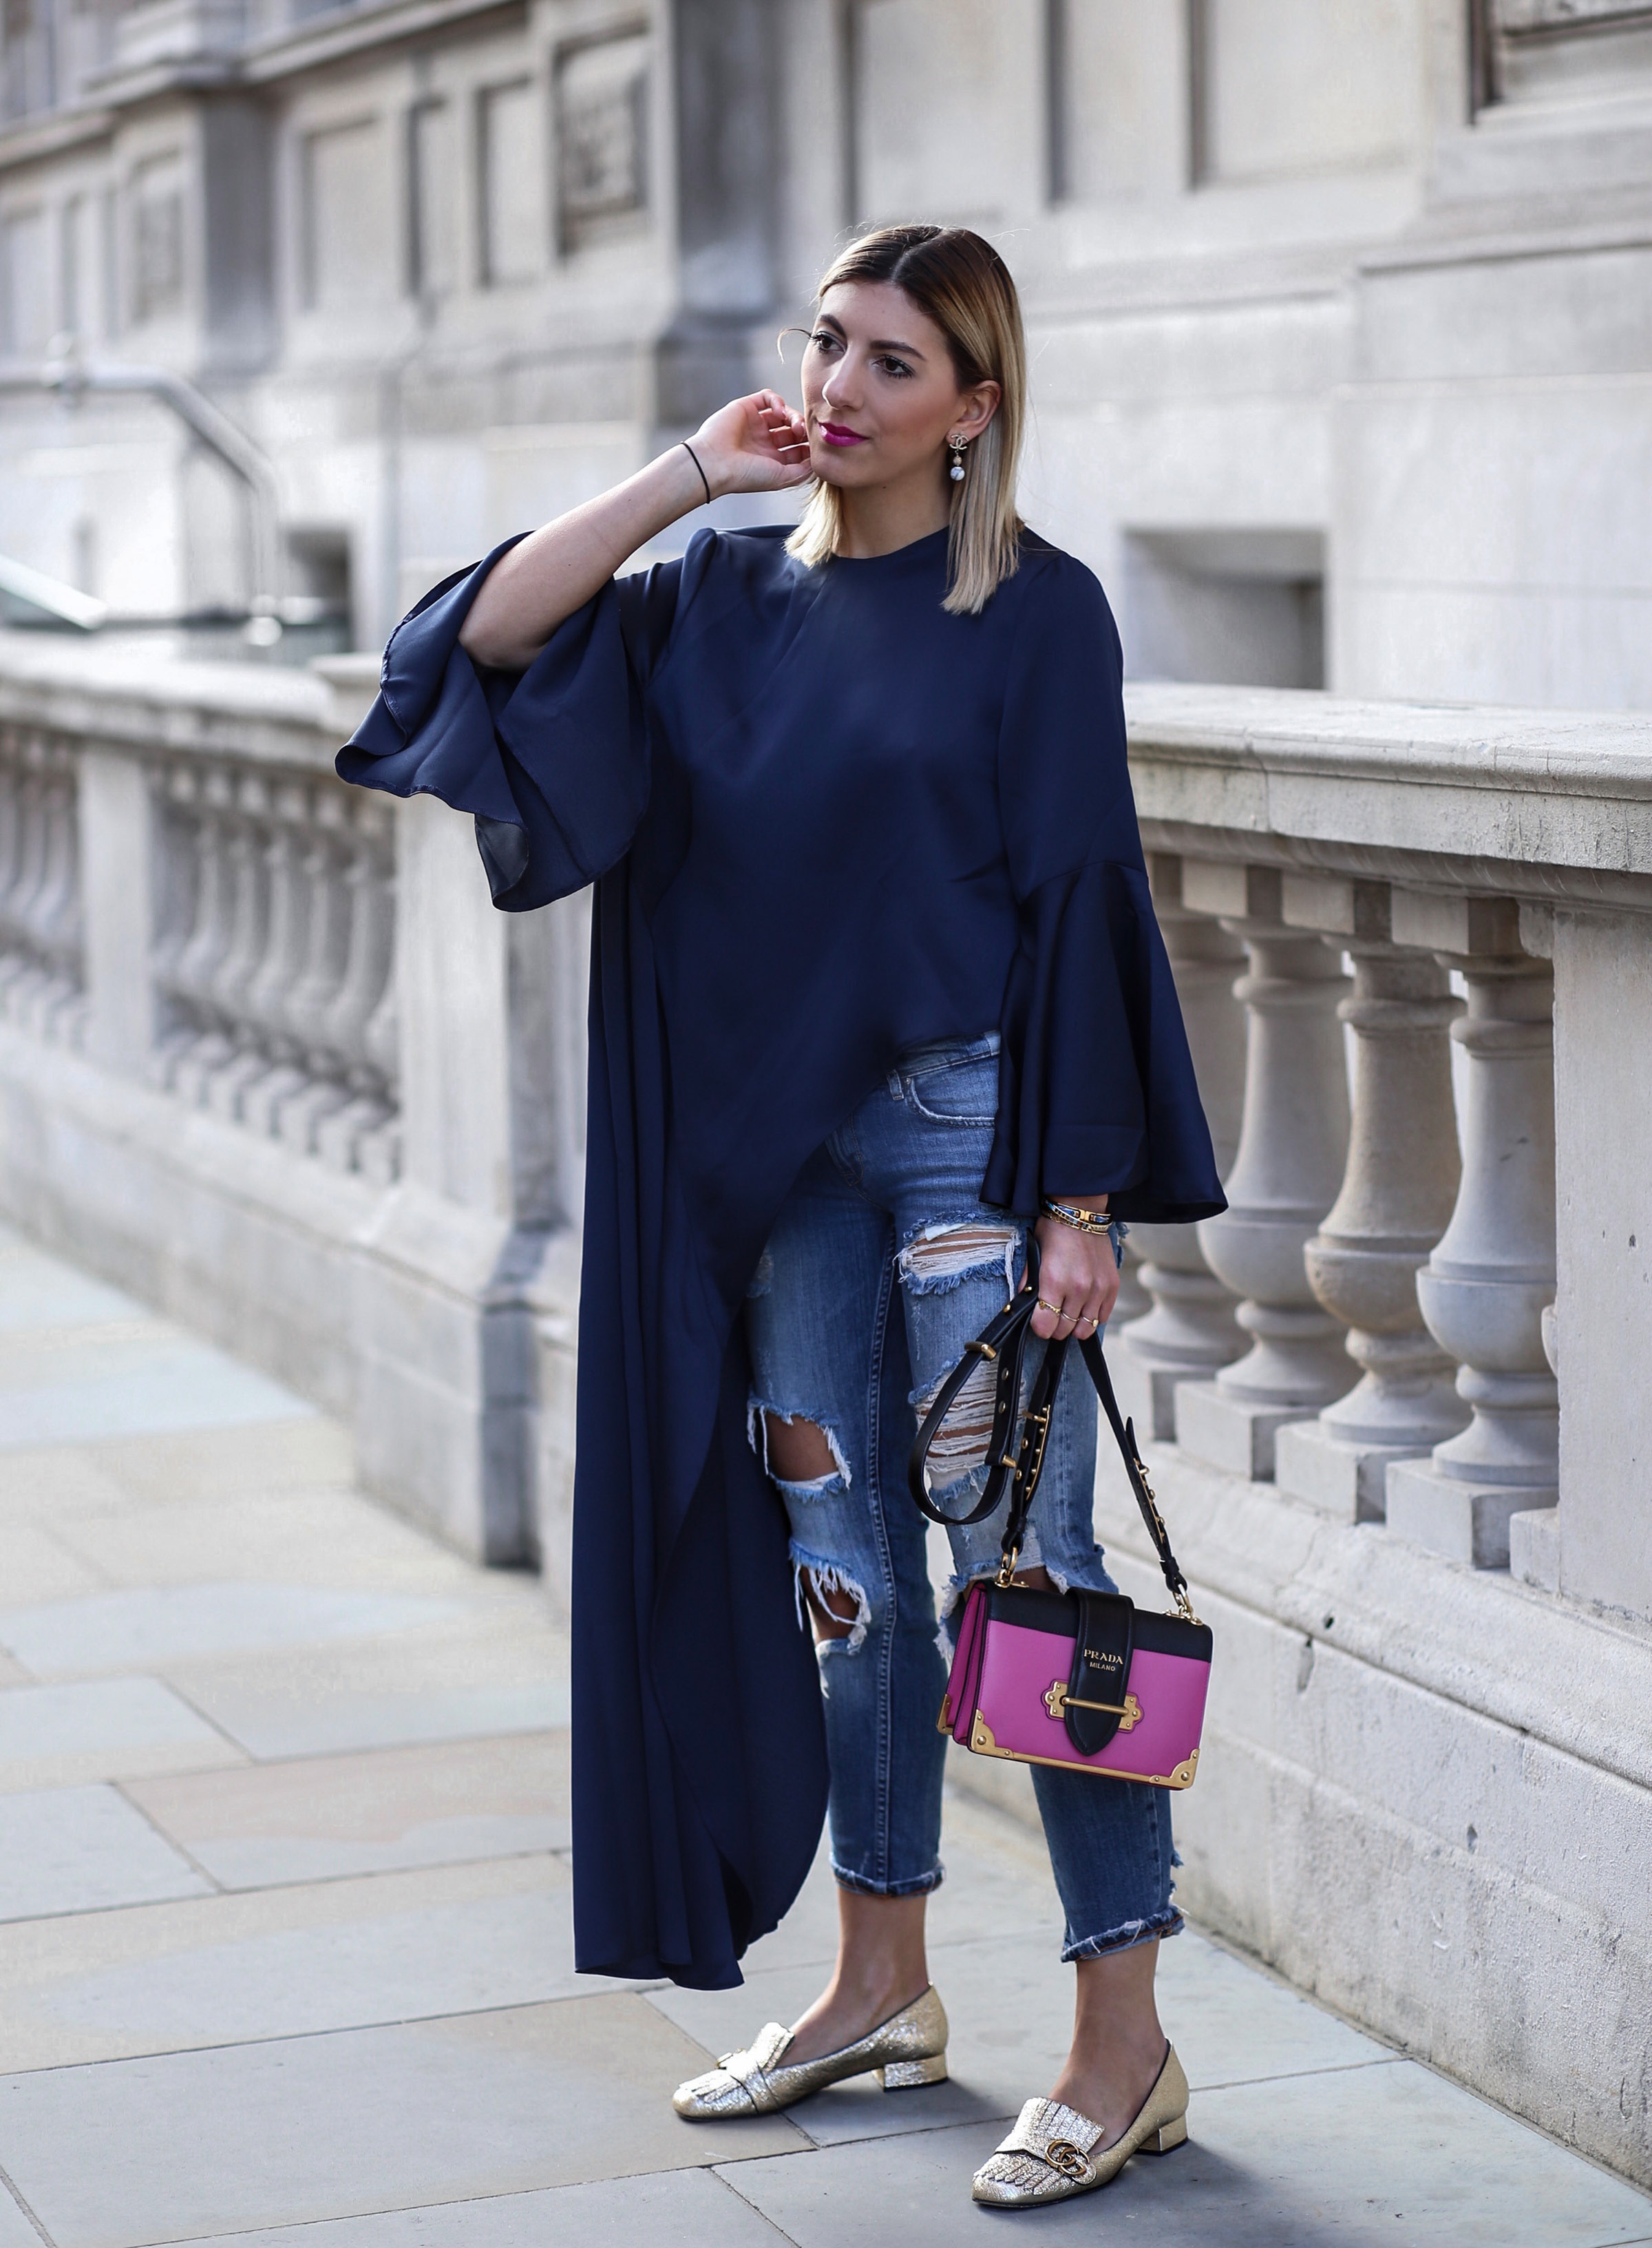 aylin_koenig_fashion_blog_london